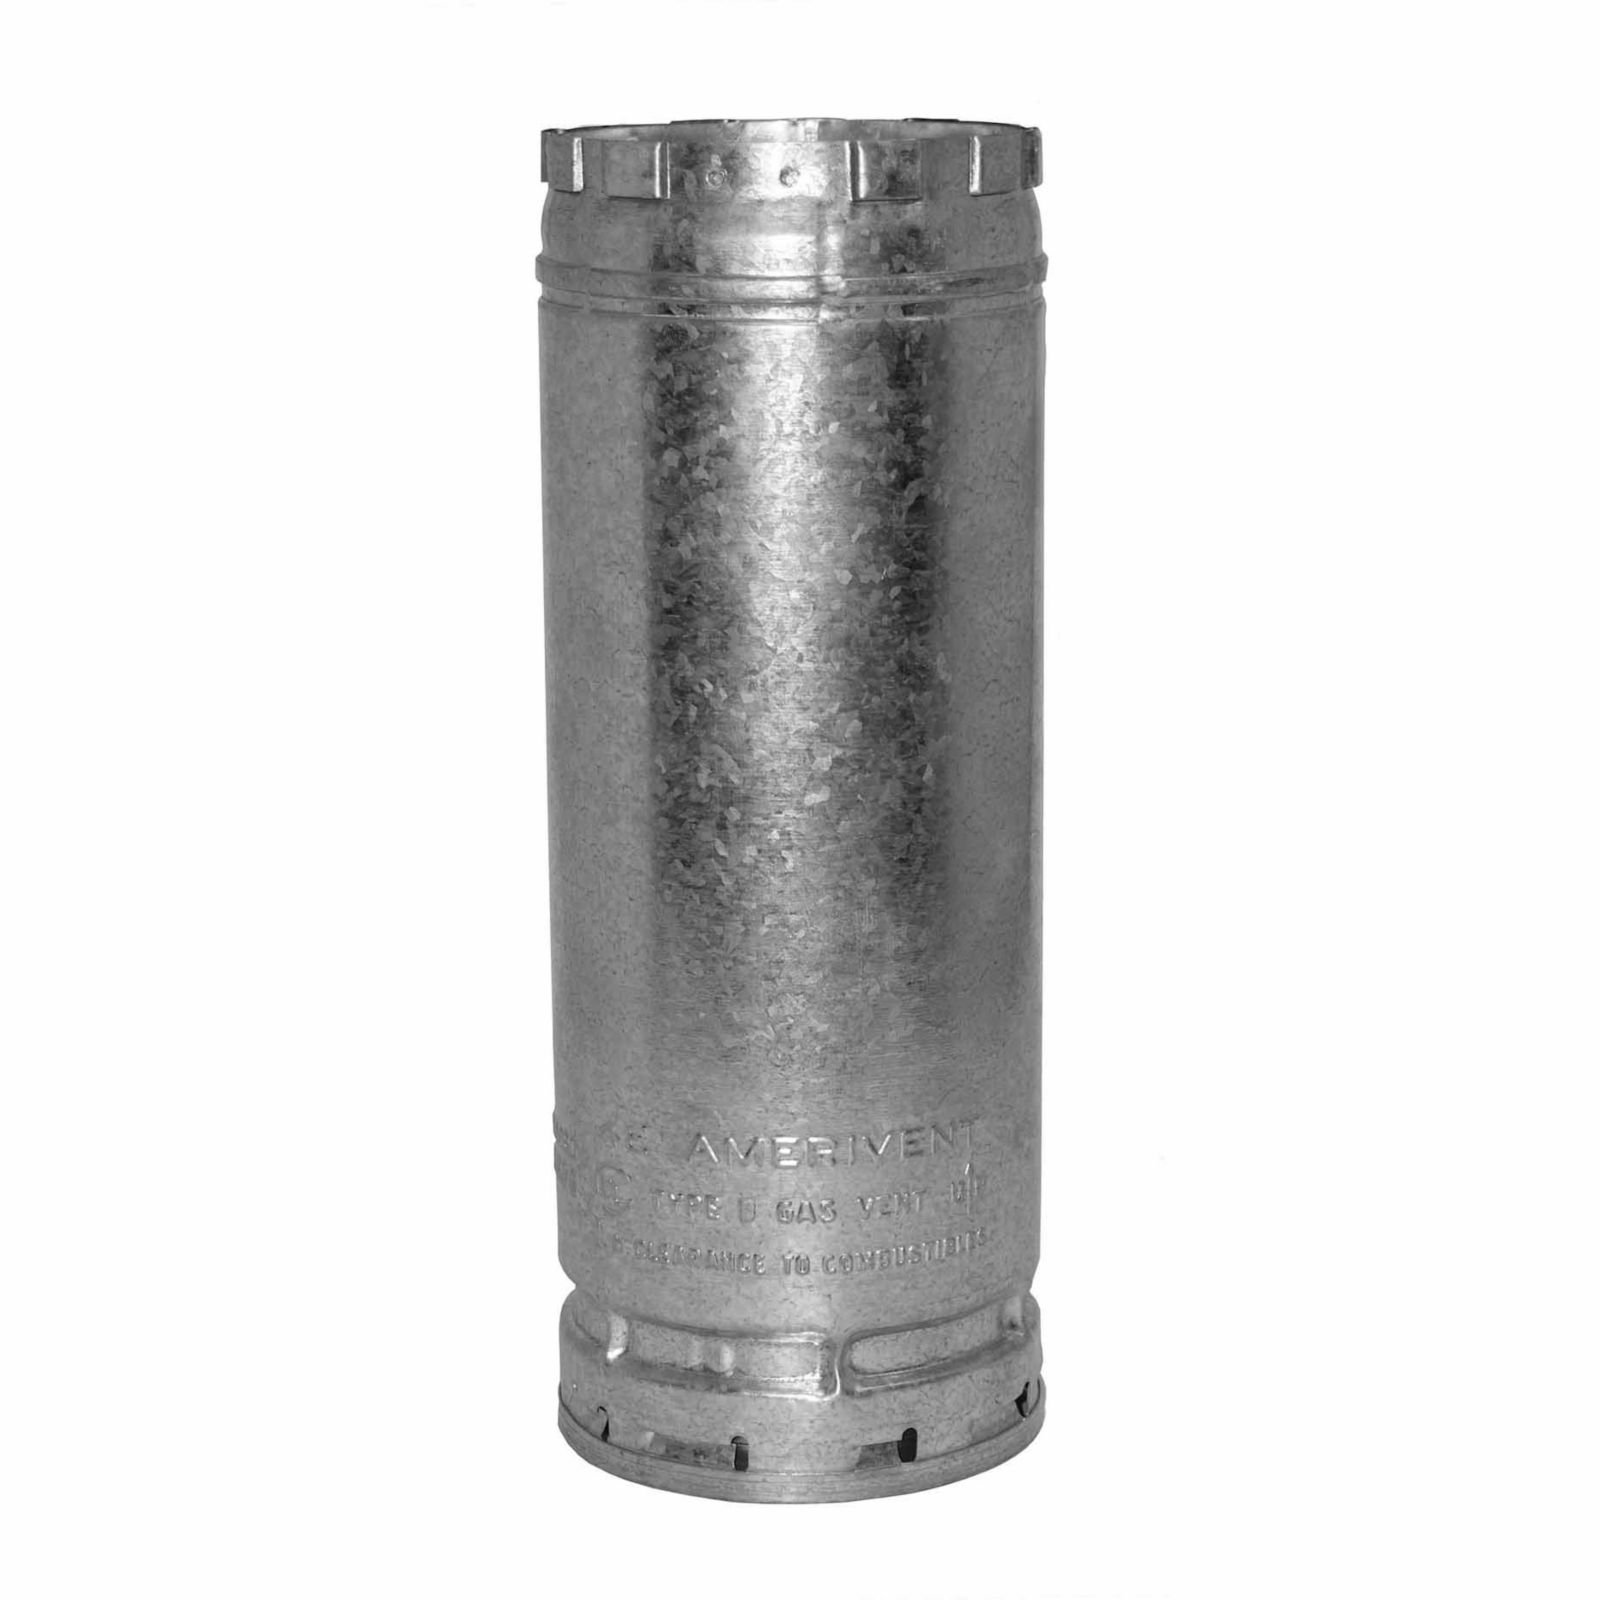 "AmeriVent 6E24 - Pipe Section Type B Gas Vent, 6"" Round X 24"" Length"